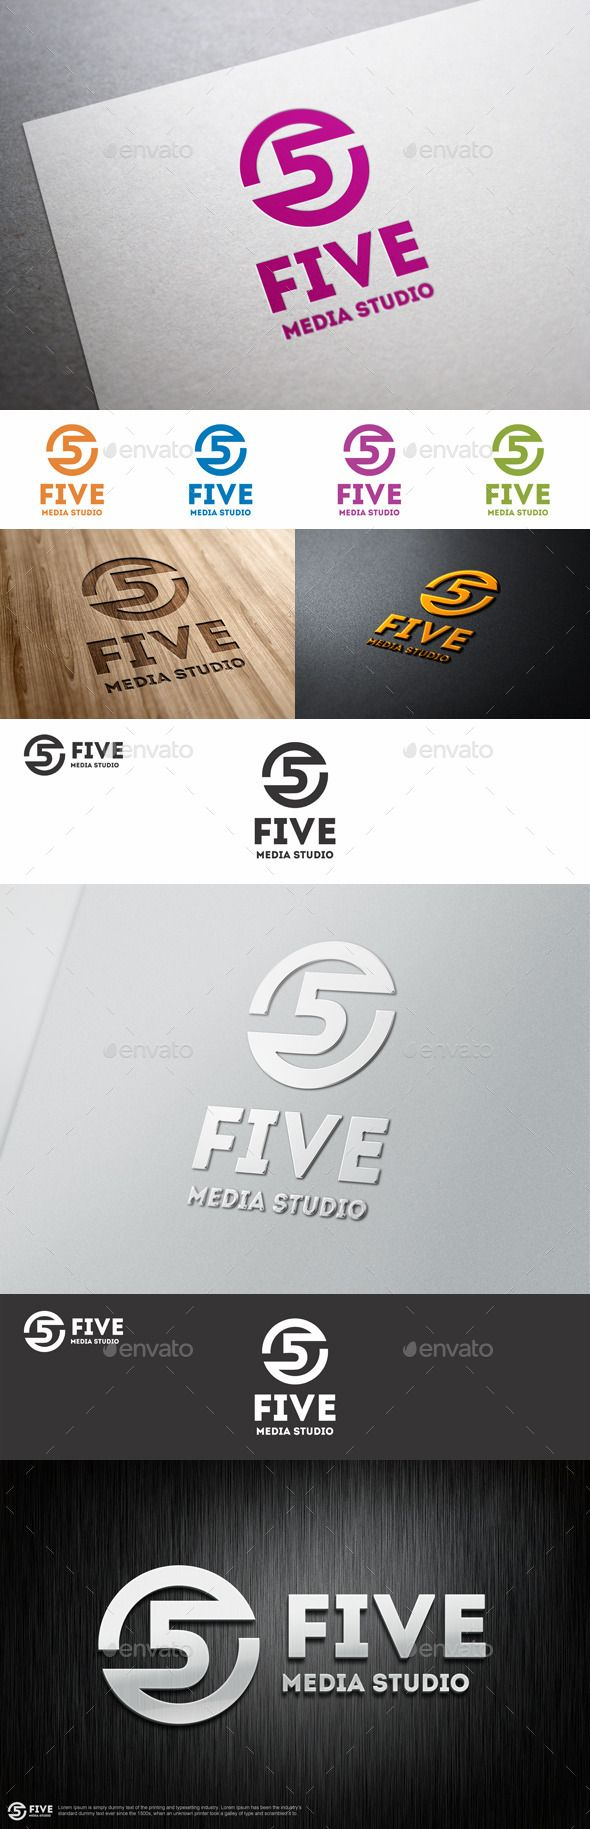 Five Media Studio Logo Template - Five Logo Number – An excellent logo template suitable for media, networking, technology and communications businesses.  Is a logo that can be used by Multi media developers, design agencies, web designers, tv channels, graphic designers, agencies, sport logo, clothing business, etc  Adaptable for a wide variety of uses. Design is minimal & easy to configure.